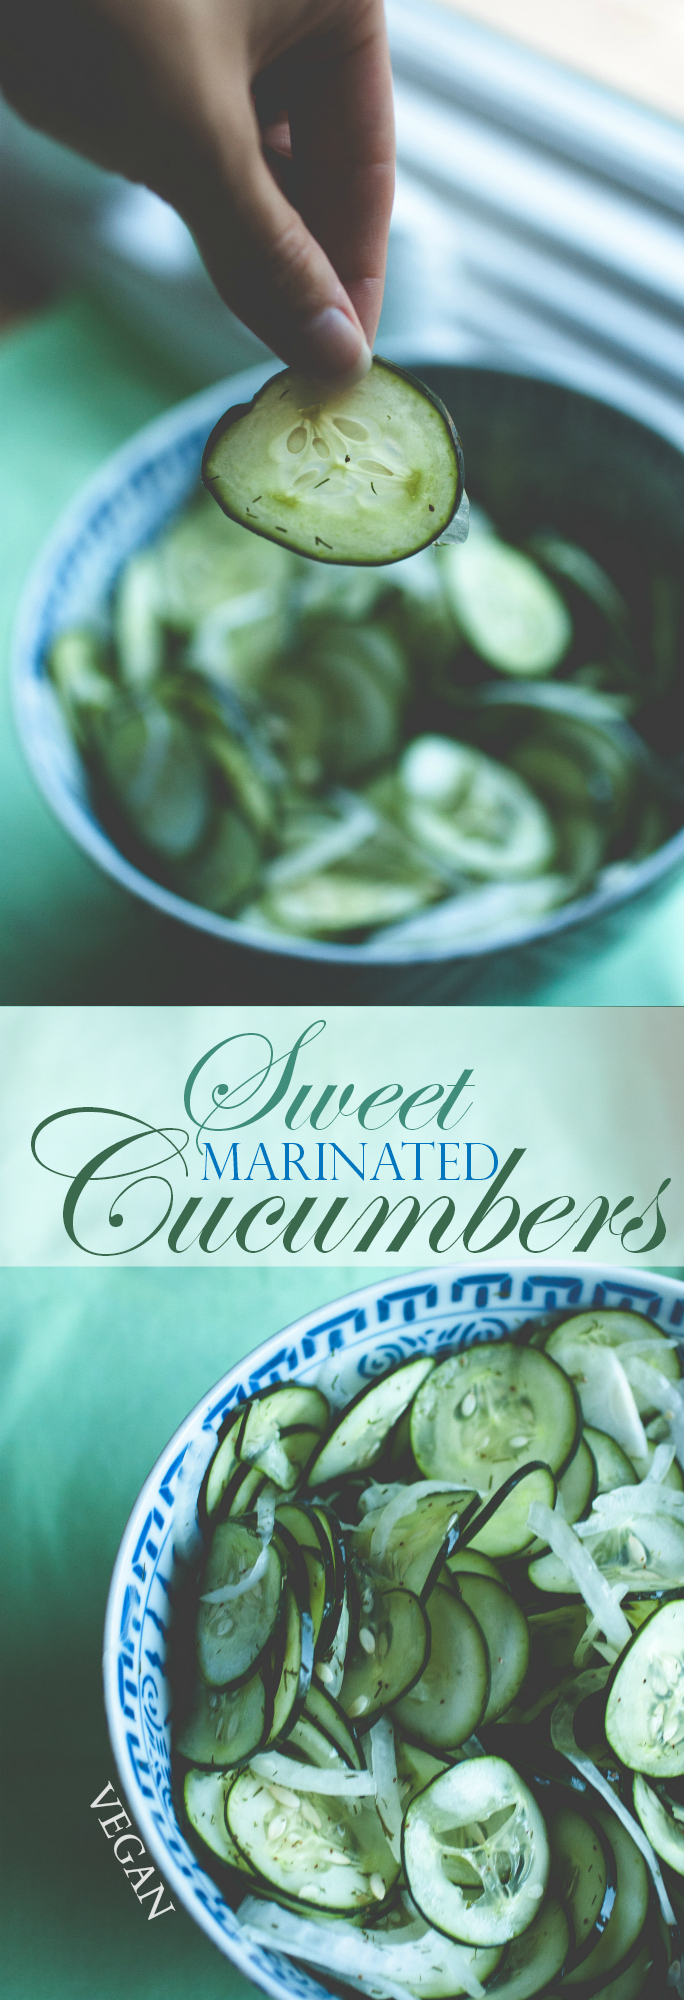 Produce On Parade - Sweet Marinated Cucumbers - This dish is a perfect marriage of sour and sugary with notes from the delicate, herbed cucumber slices and sweet onion. A terrific way to use up all those beautiful cucumbers from the garden!